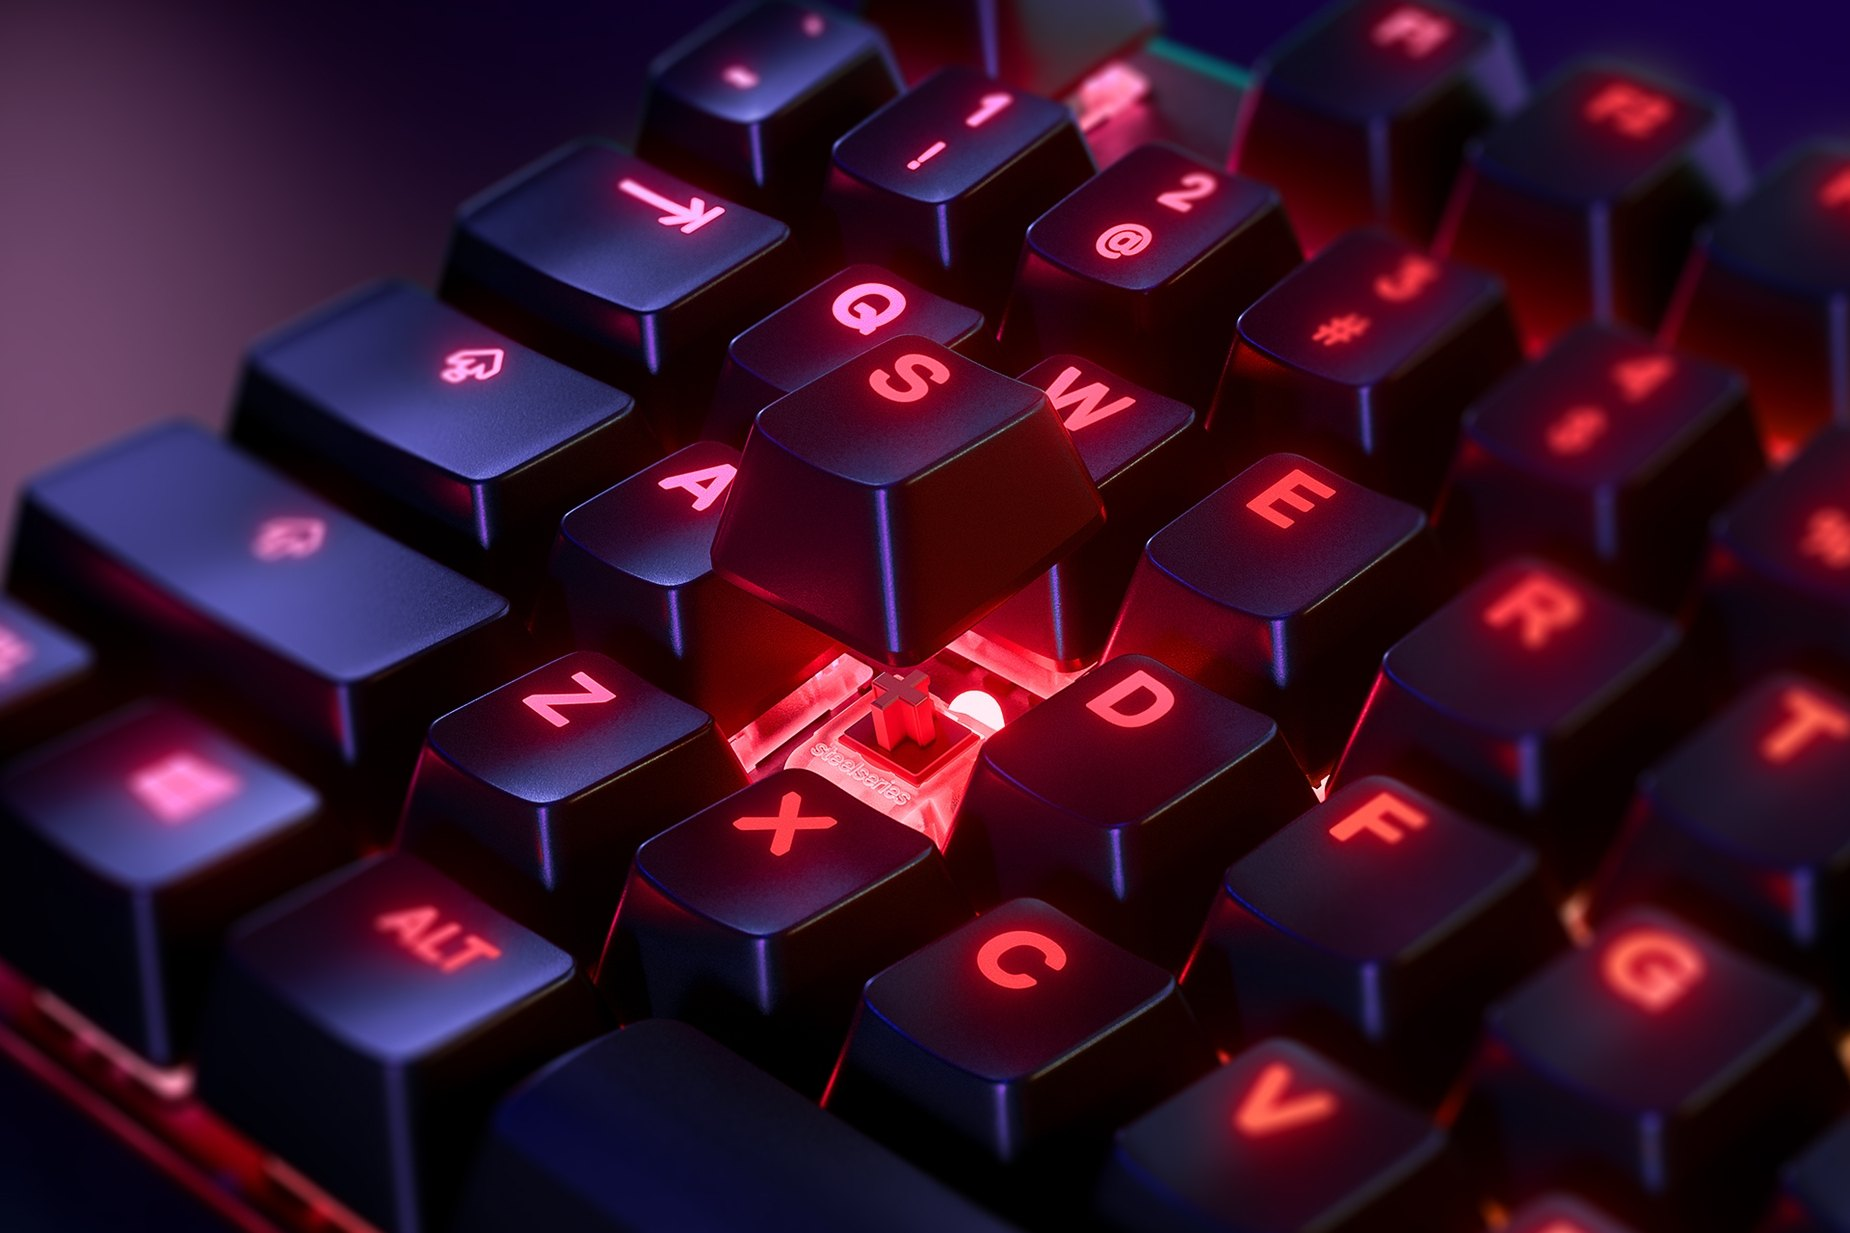 Zoomed in view of a single key on the UK English - Apex 7 TKL (Red Switch) gaming keyboard, the key is raised up to show the SteelSeries QX2 Mechanical RGB Switch underneath